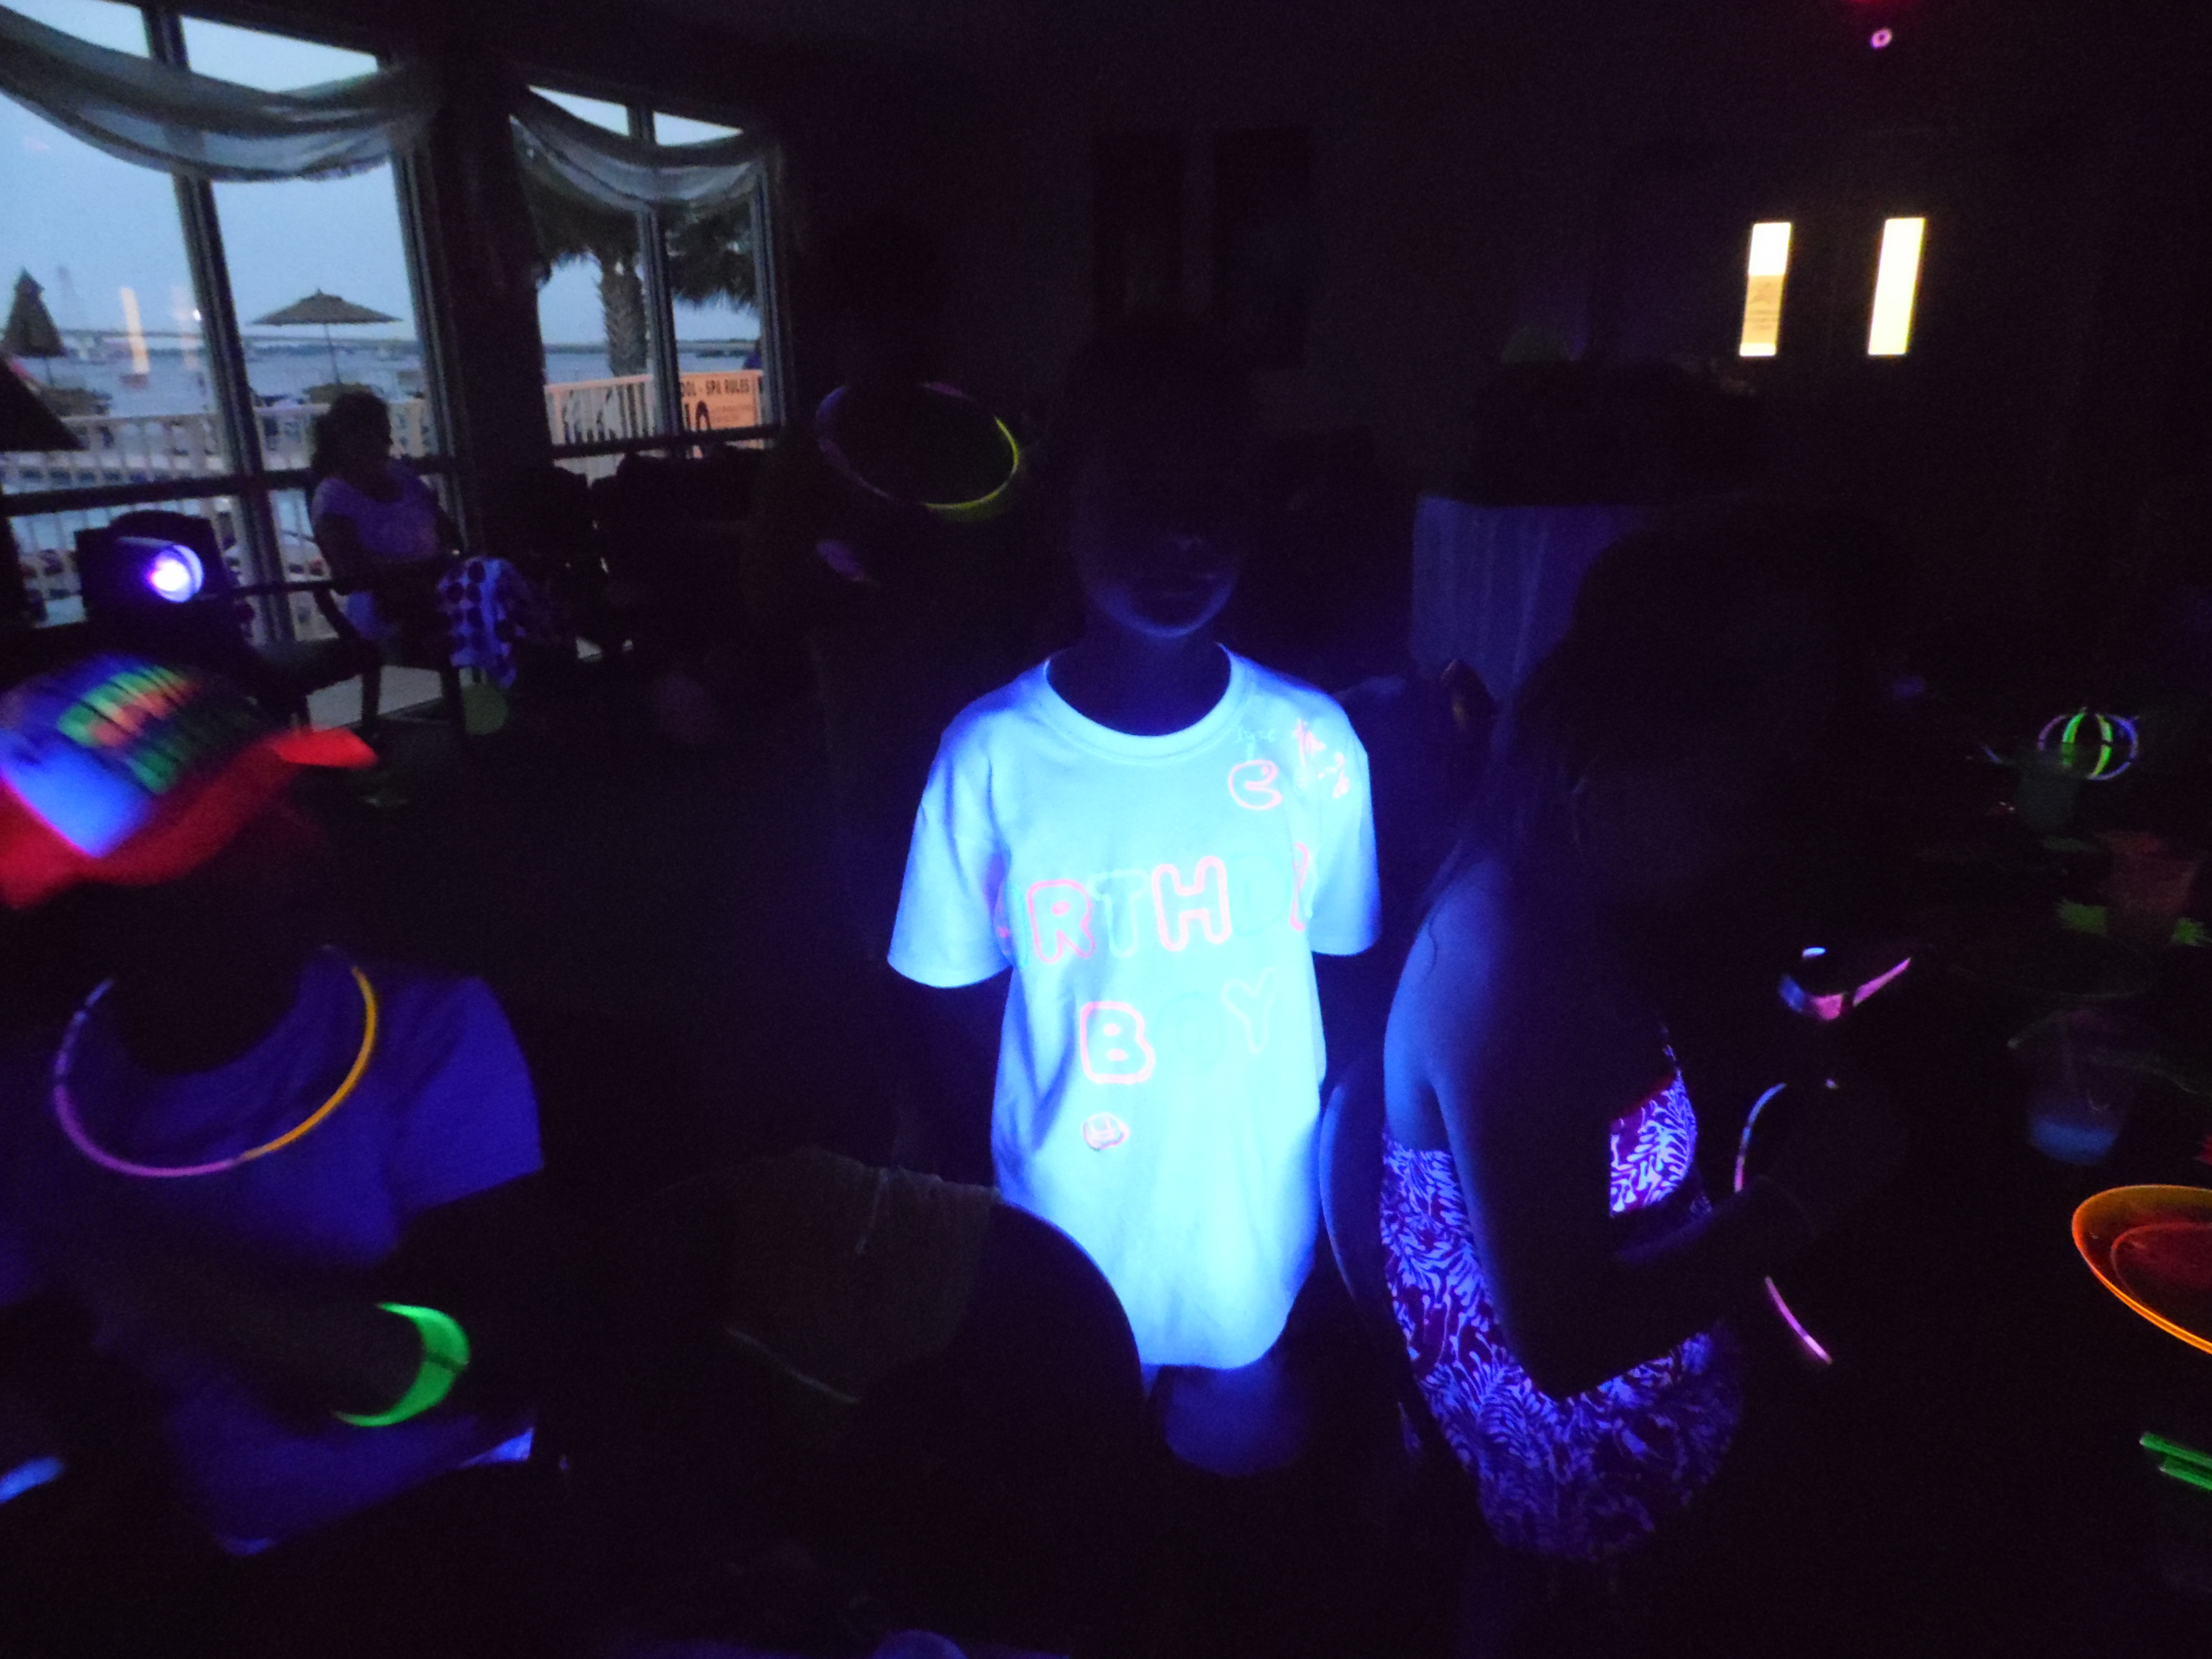 Black Light Party Outfit Ideas Outfit Ideas HQ Black Light Party NEON GLOW  PAINT PARTY III YouTube NEON GLOW PAINT PARTY III Facepainting Ideas For  Glow ...